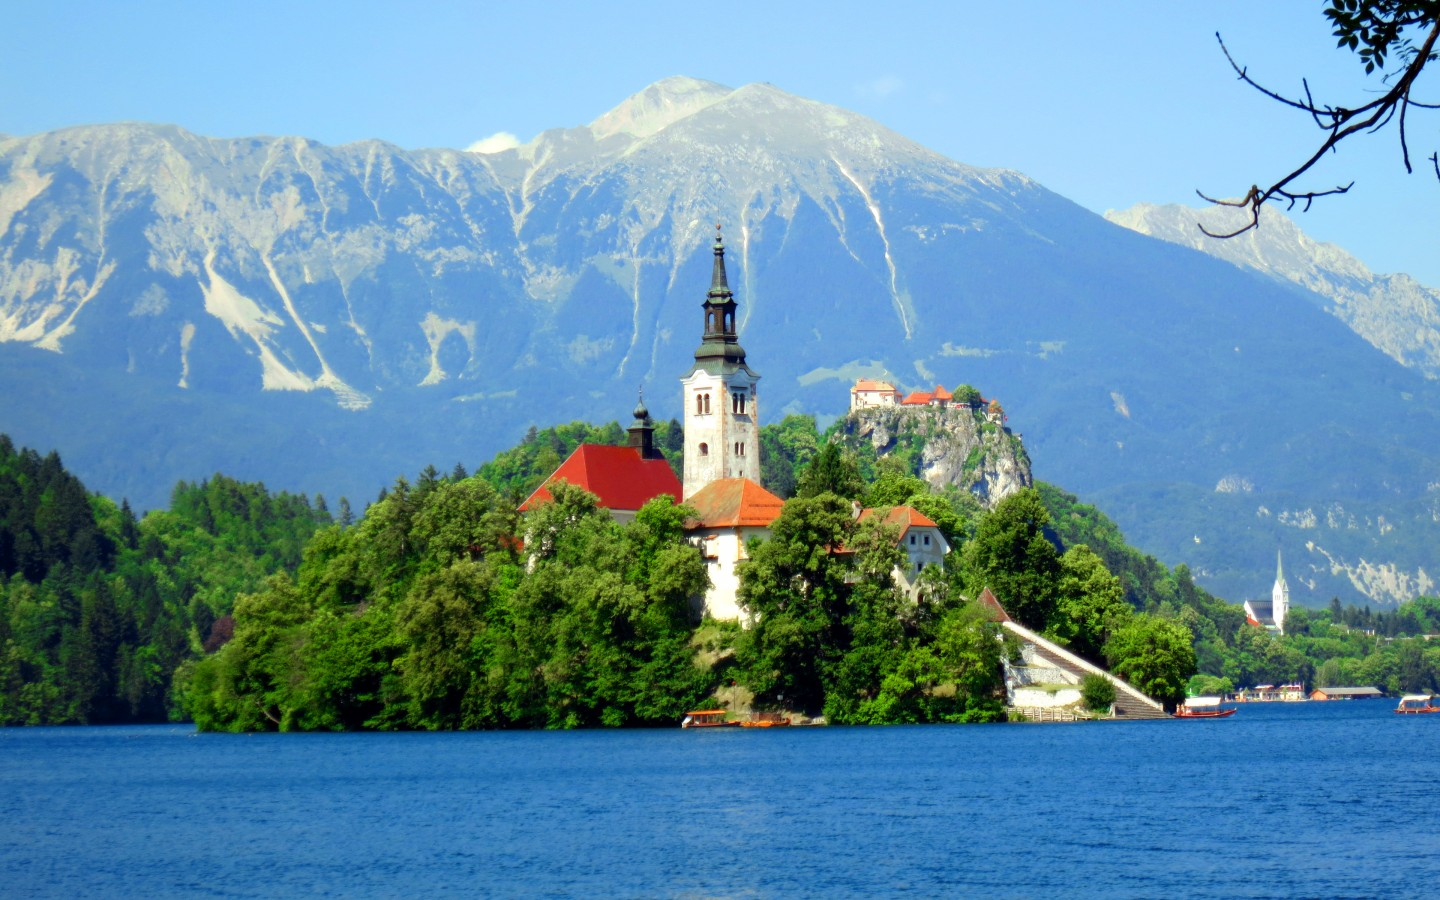 Bled, Slovenia. Sursa foto: wallpapers13.com